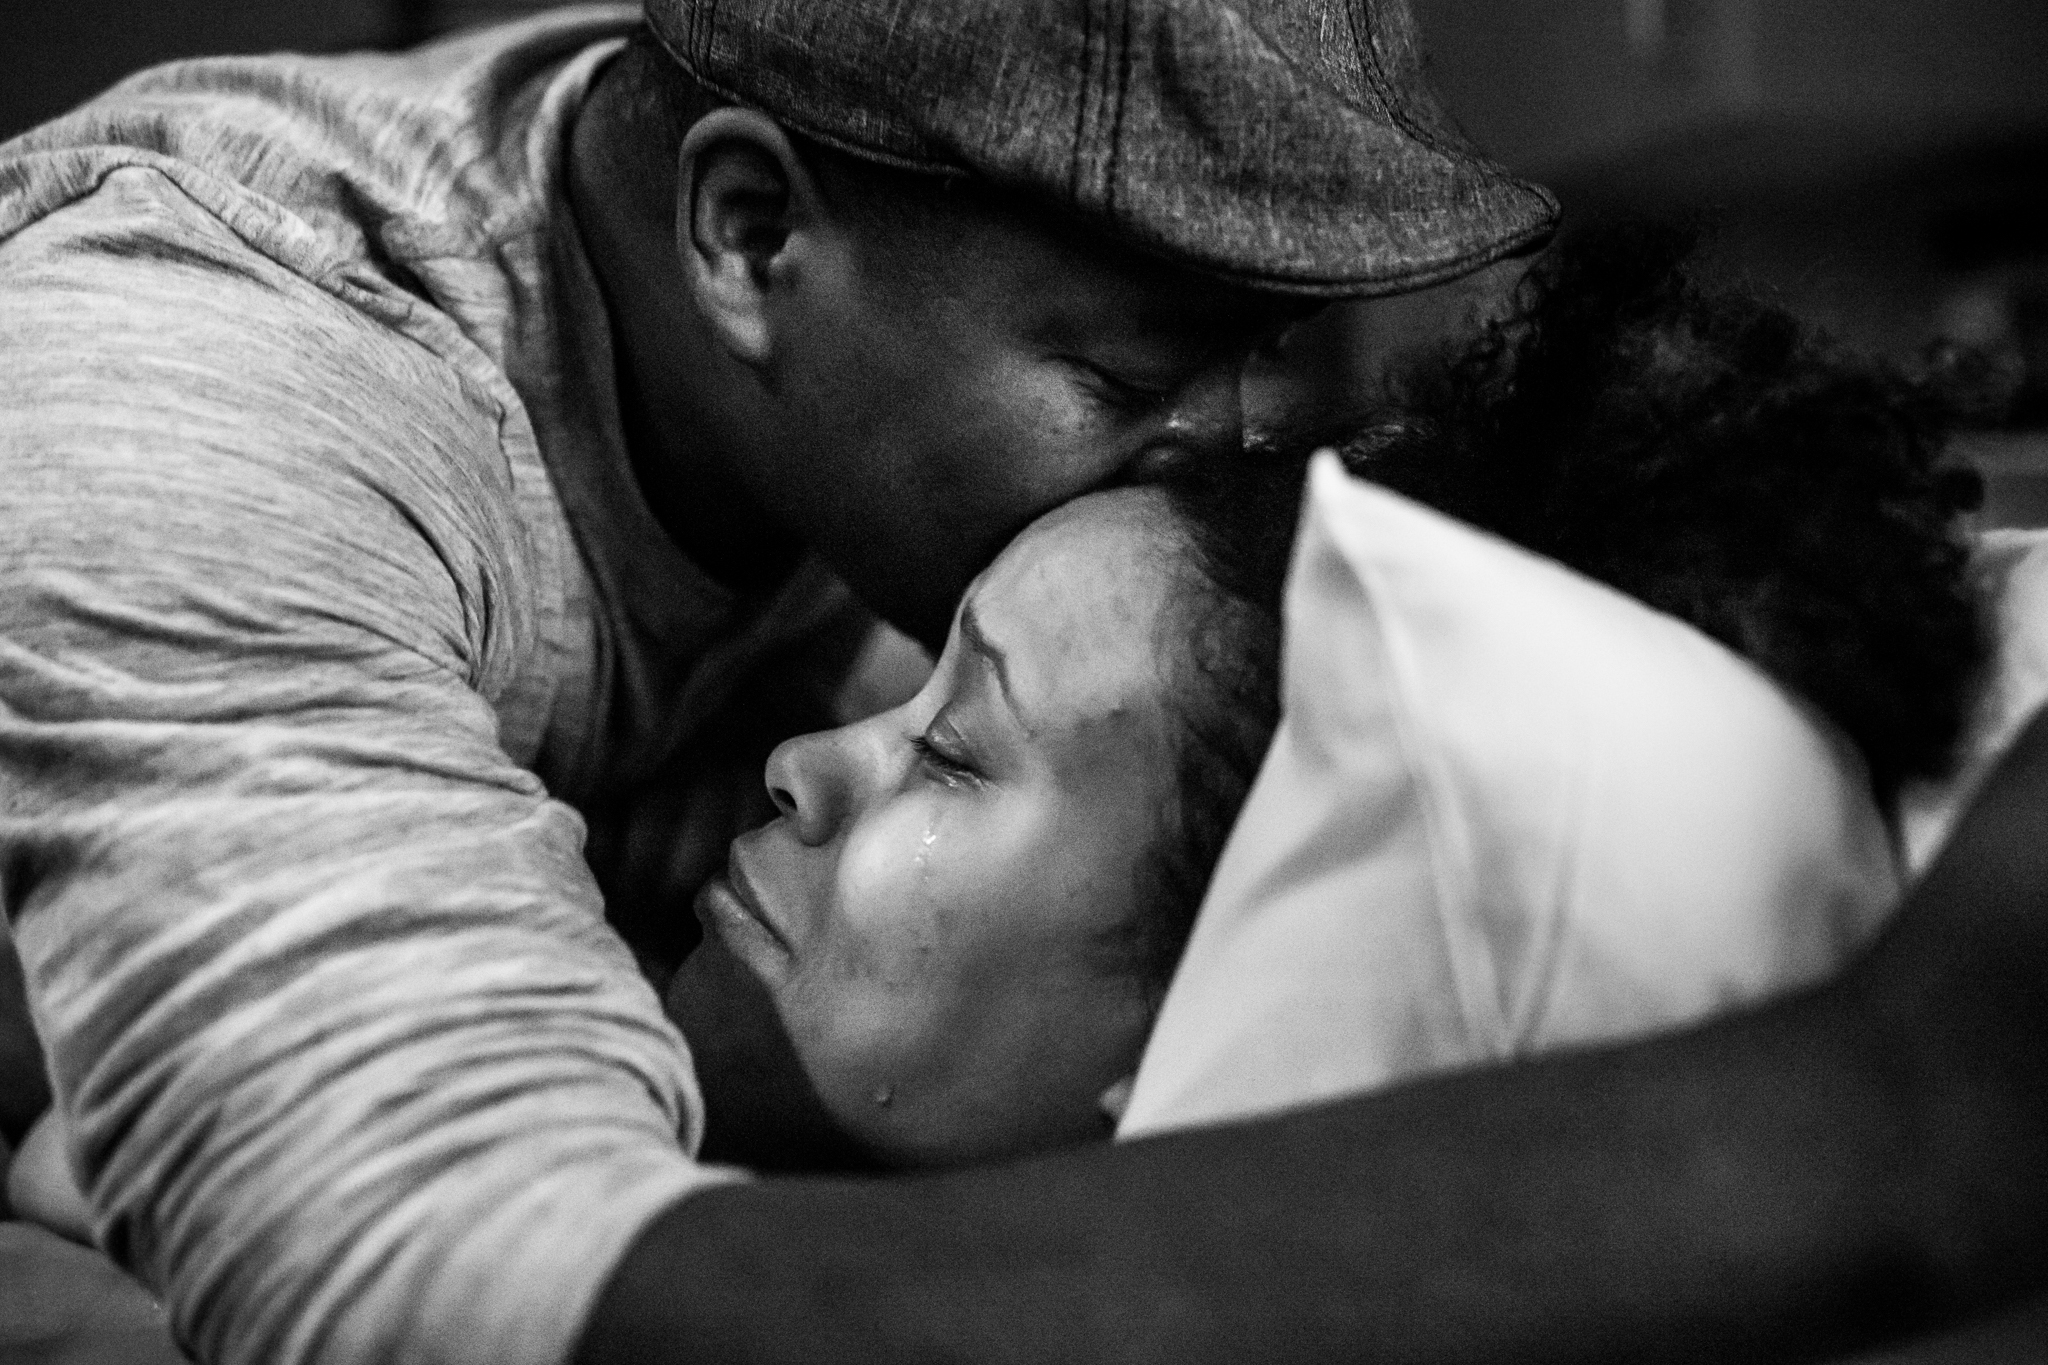 Frisco Birth Photographer Lawren Rose Photography captures a wonderful moment where a dad kisses his wifes forehead as she is shedding tears of joy after just succeeding in a vbac after 40 hours of labor, at Baylor Scott & White Medical Center - Centennial in frisco